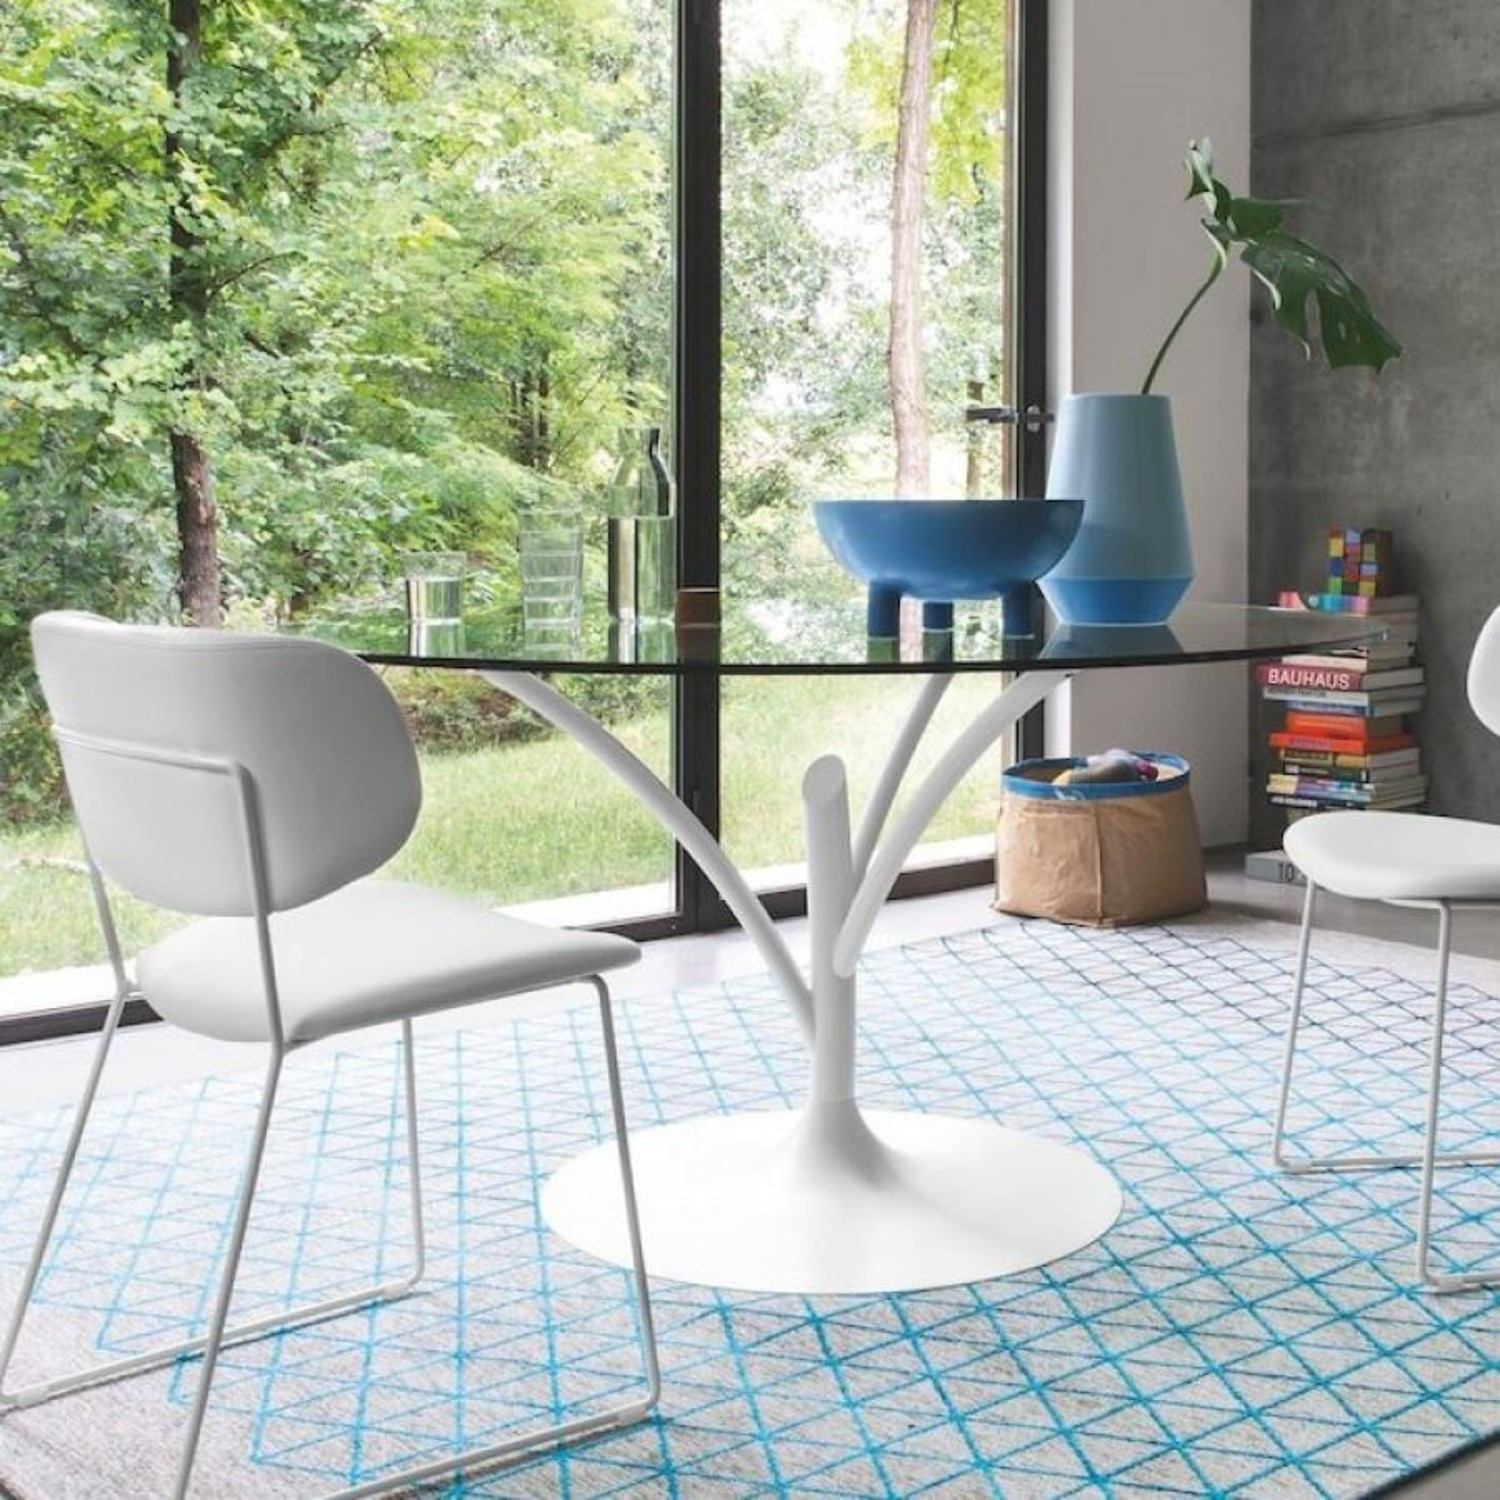 Calligaris Acacia Round Glass Table + 4 Claire Chairs - image-4